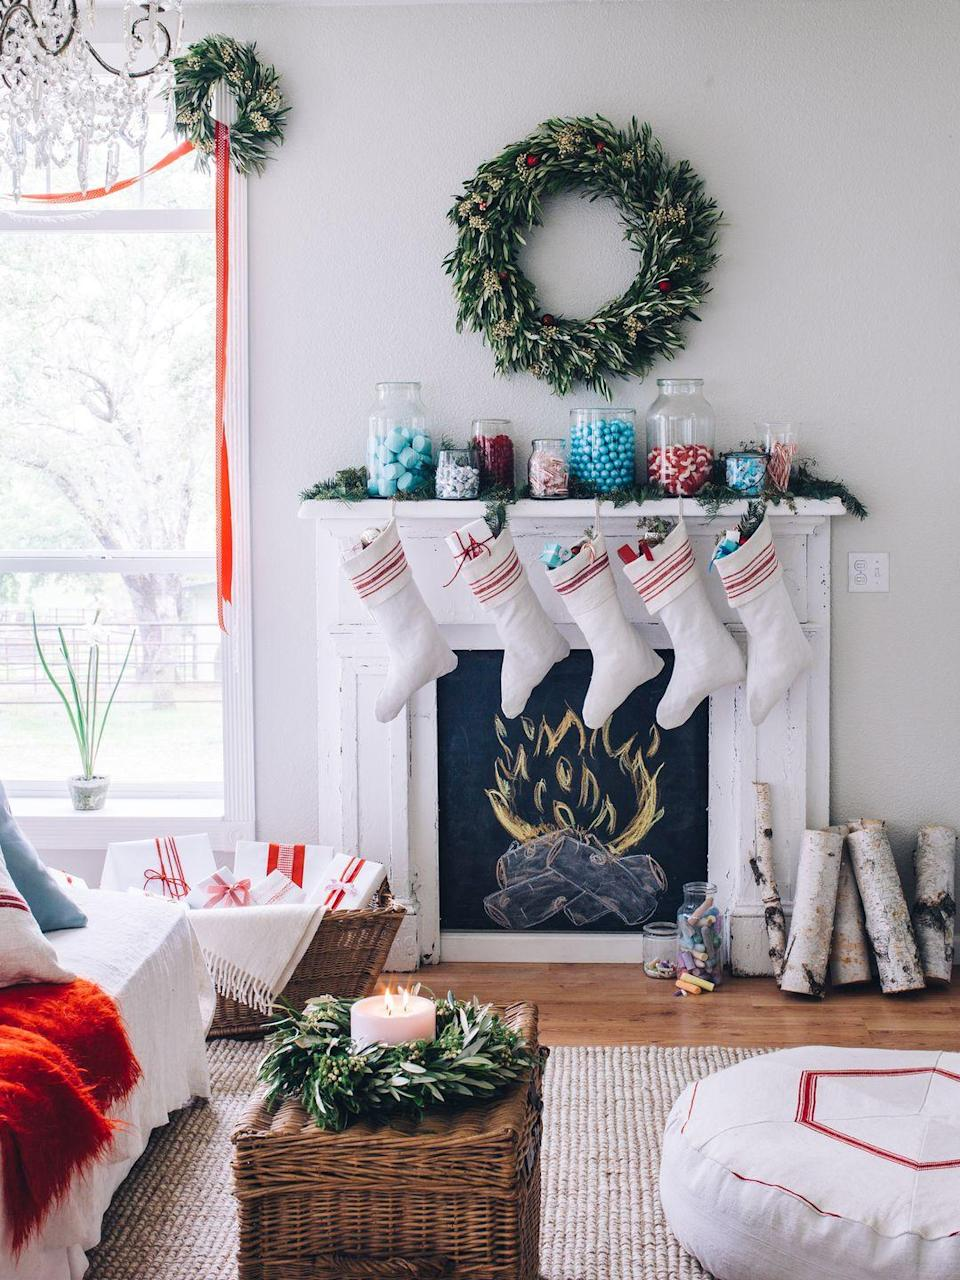 """<p>You're going to need a place for all of those <a href=""""https://www.countryliving.com/shopping/gifts/g2190/stocking-stuffers/"""" rel=""""nofollow noopener"""" target=""""_blank"""" data-ylk=""""slk:stocking stuffers"""" class=""""link rapid-noclick-resp"""">stocking stuffers</a>! If you use your fireplace often, you may want to refrain from leaving your stockings up at the beginning of the season. However, leaving it to the last minute makes for a special Christmas Eve tradition.</p><p><a class=""""link rapid-noclick-resp"""" href=""""https://www.amazon.com/Ivenf-Christmas-Stockings-Snowflake-Decorations/dp/B07D29MQVK/ref=zg_bs_13744821_2?tag=syn-yahoo-20&ascsubtag=%5Bartid%7C10050.g.25411840%5Bsrc%7Cyahoo-us"""" rel=""""nofollow noopener"""" target=""""_blank"""" data-ylk=""""slk:SHOP CHRISTMAS STOCKINGS"""">SHOP CHRISTMAS STOCKINGS</a></p>"""